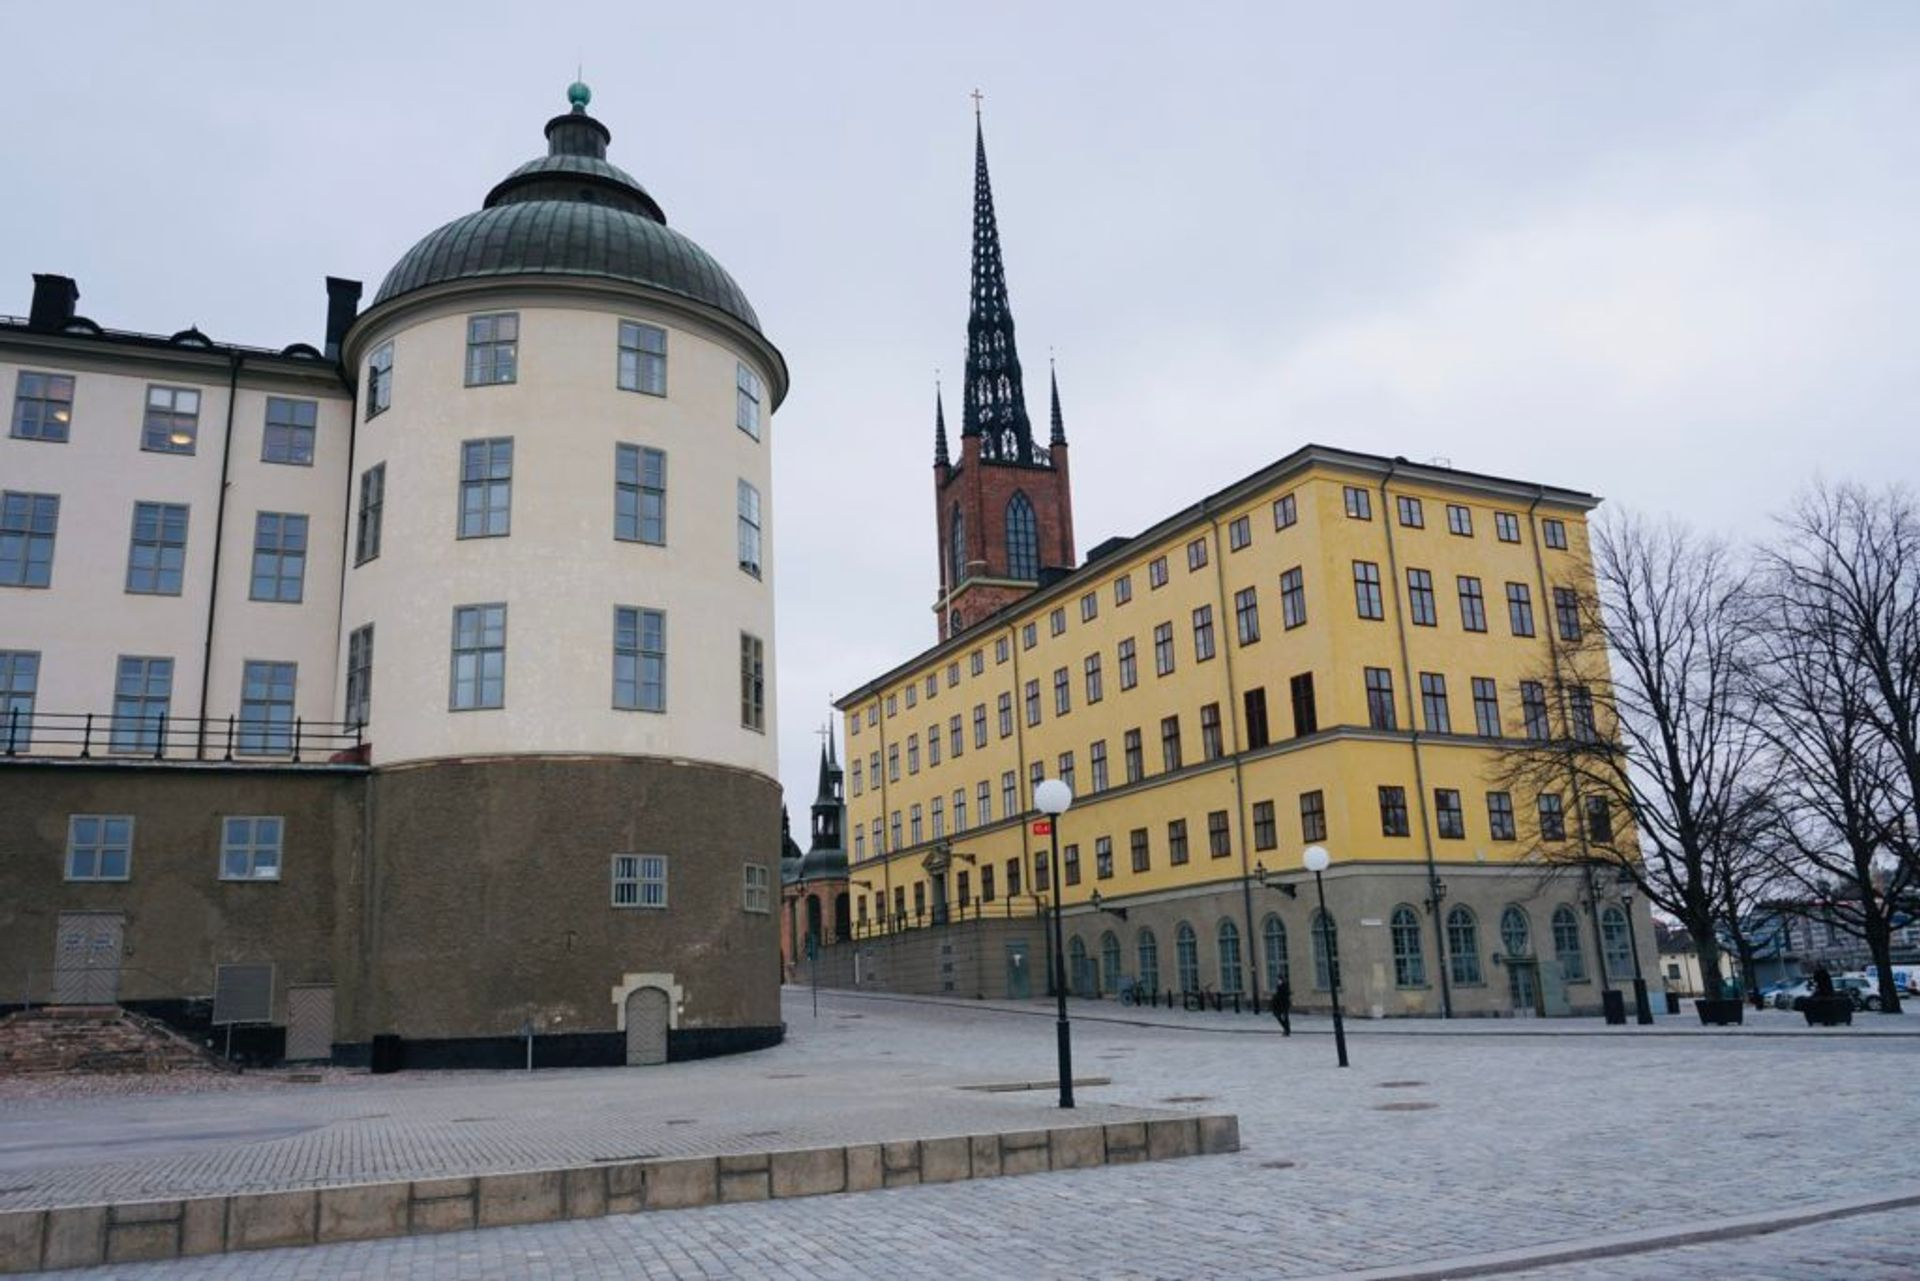 Old, colourful buildings in Stockholm.